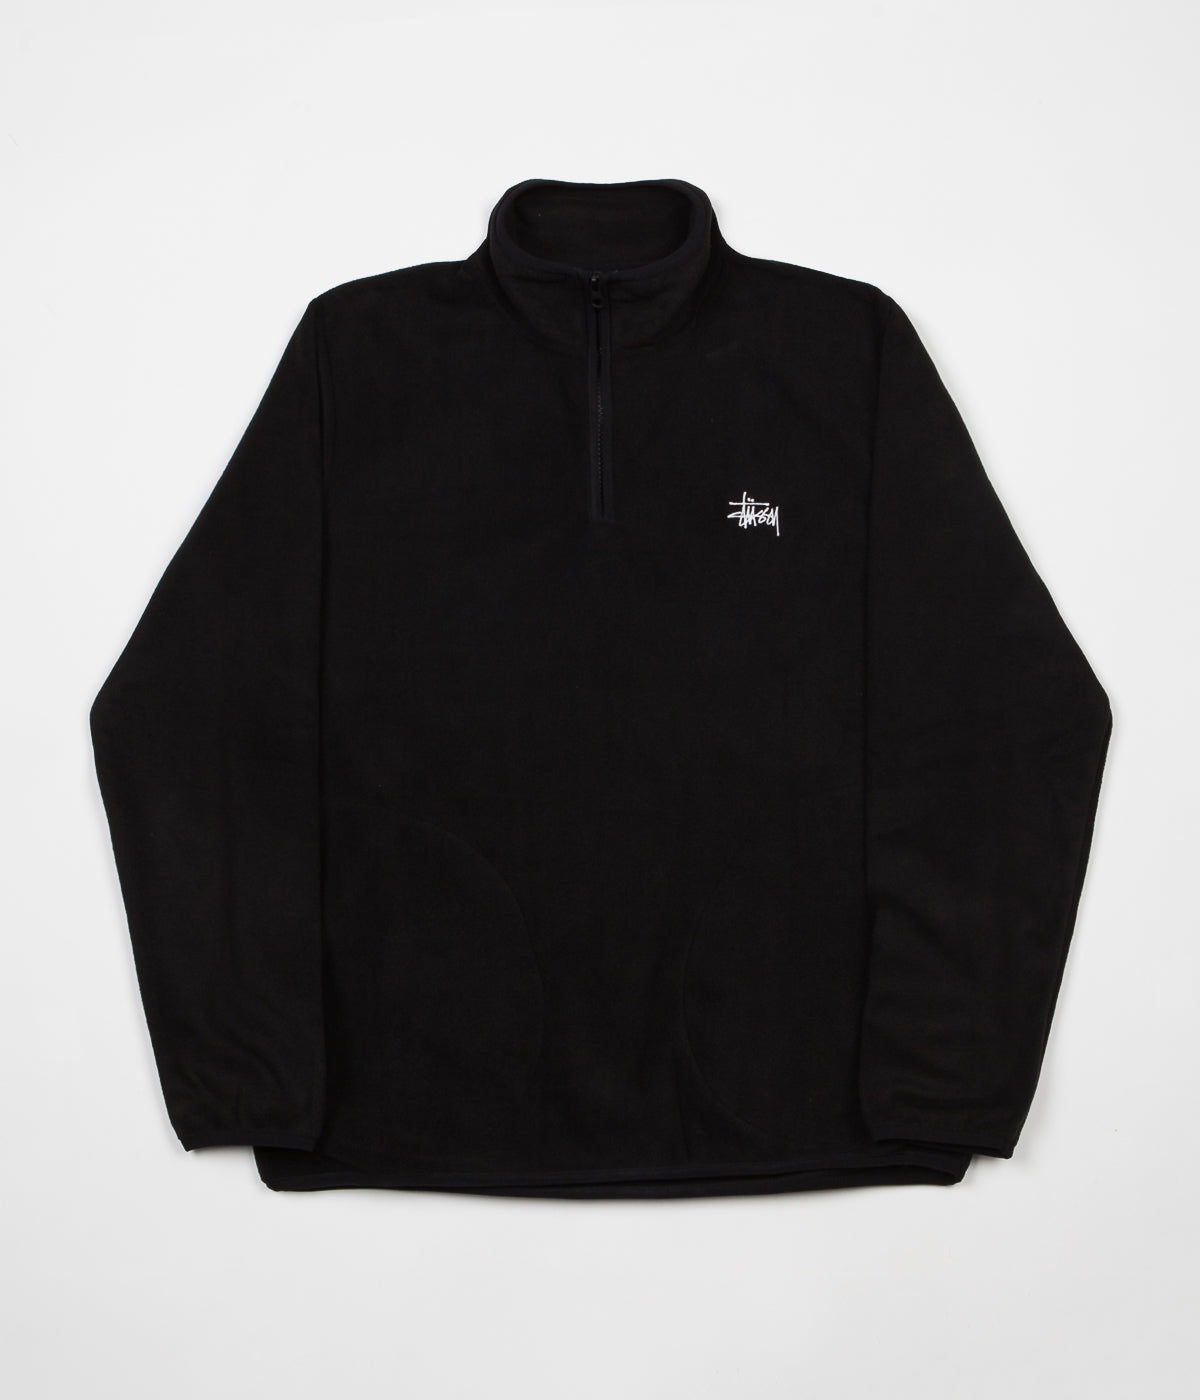 Stussy Polar Fleece Half Zip Sweatshirt - Black